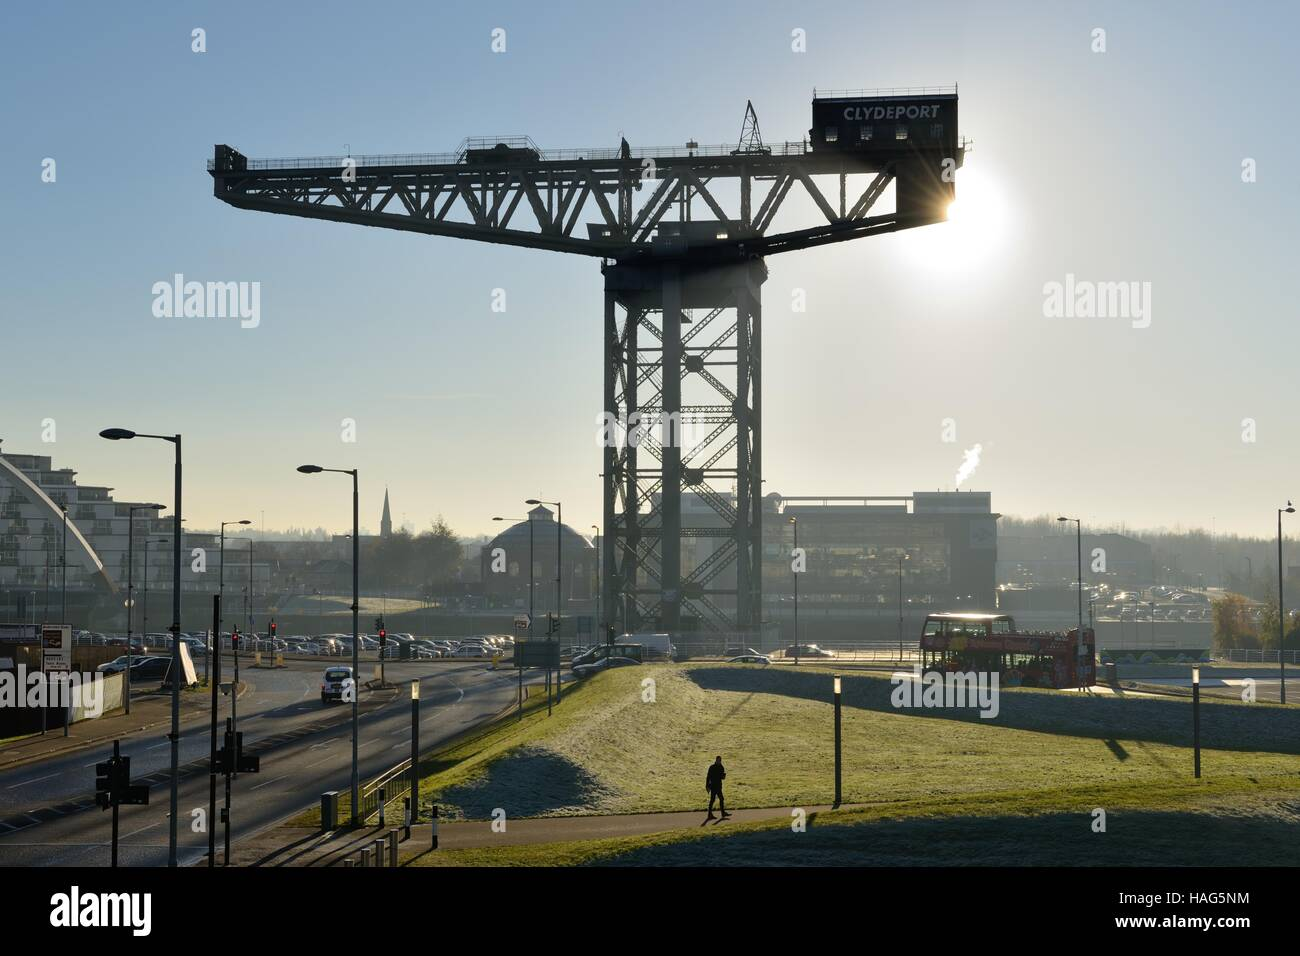 Winter sun emerging from behind the Clydeport Crane at Finnieston, Glasgow, Scotland, UK - Stock Image